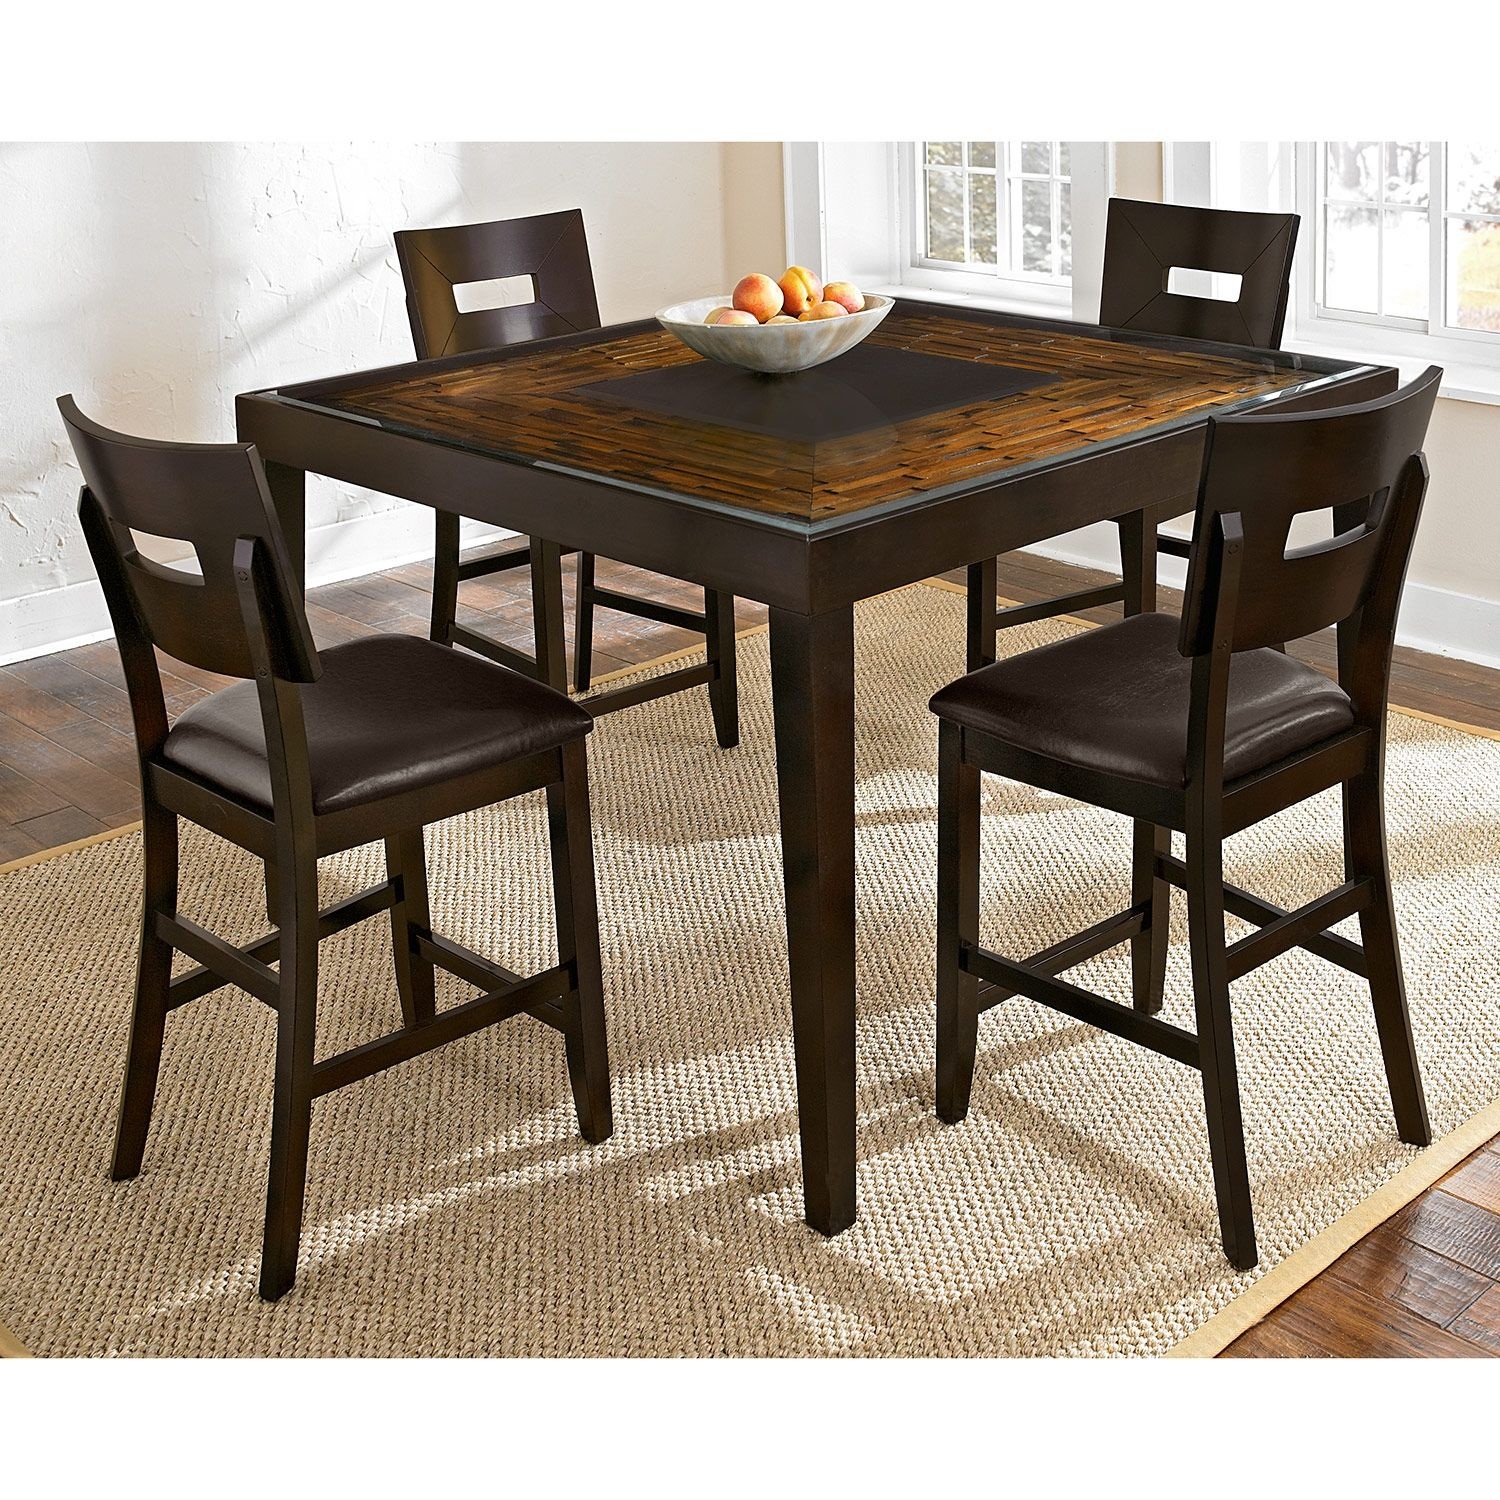 Cyprus Ii 5 Pc Counter Height Dinette Value City Furniture Kitchen Table Settings Furniture